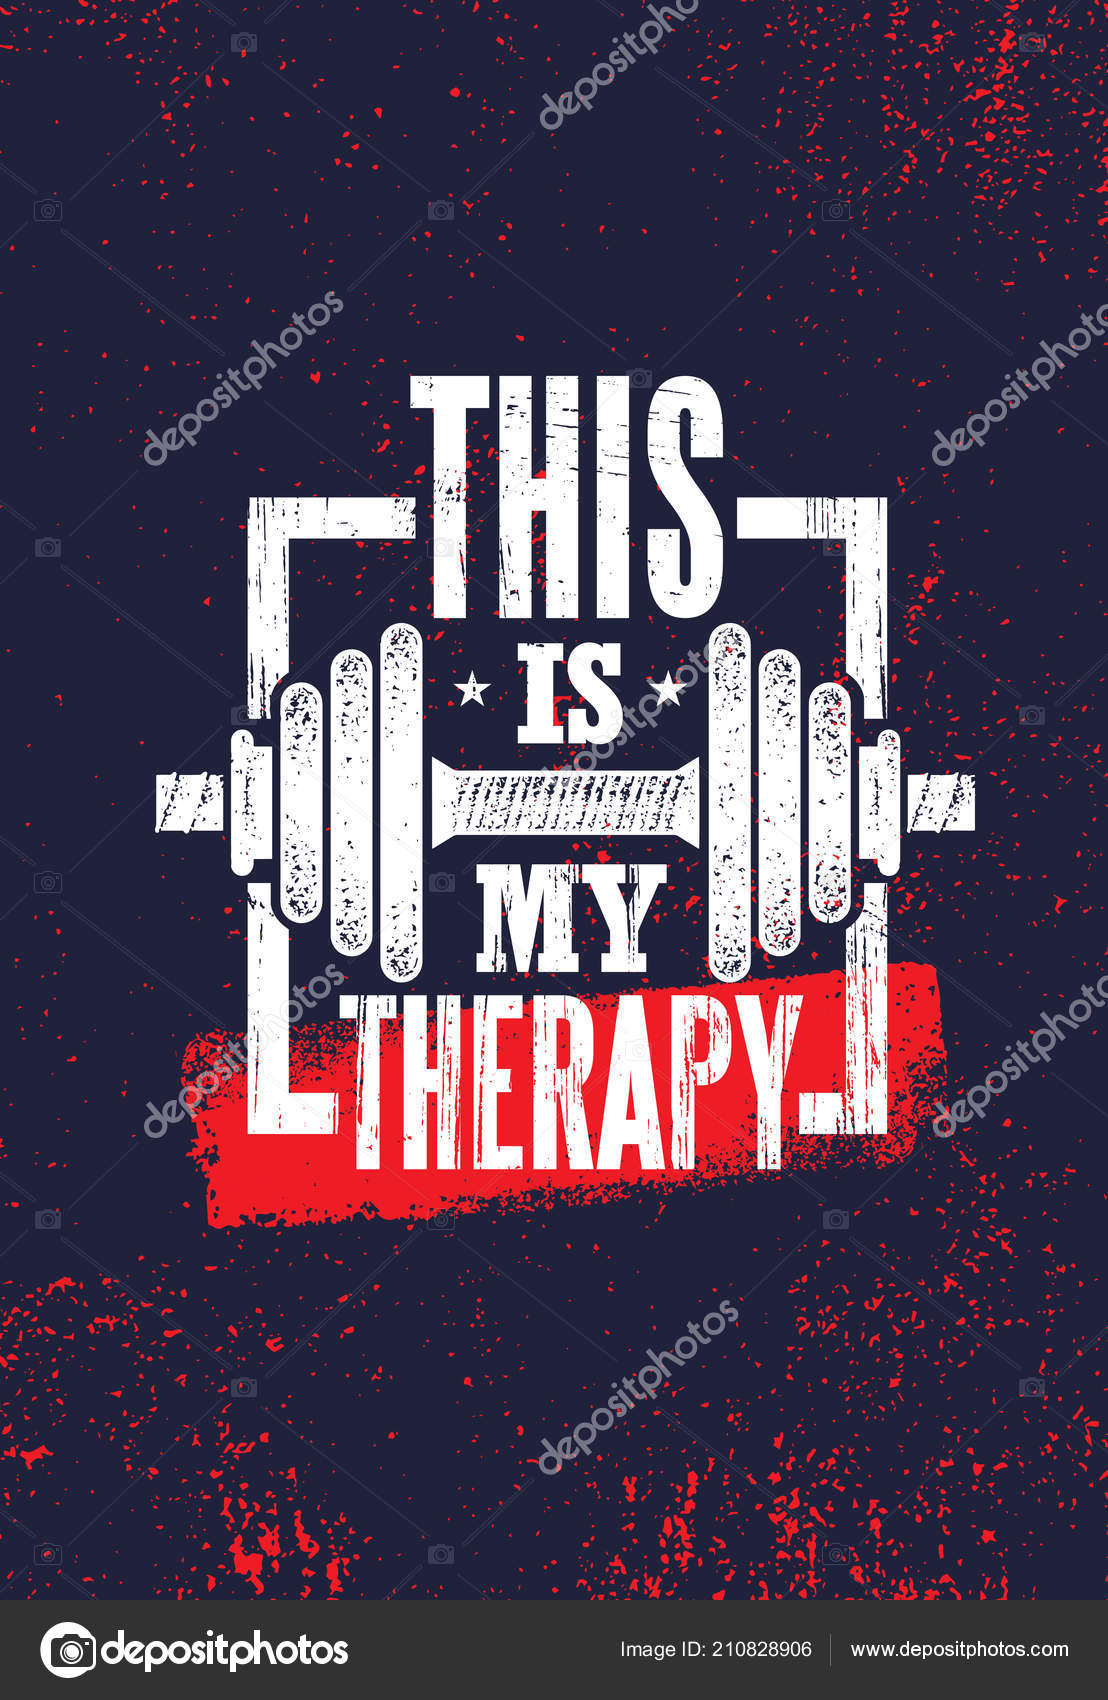 Therapy Fitness Muscle Workout Motivation Quote Poster ...